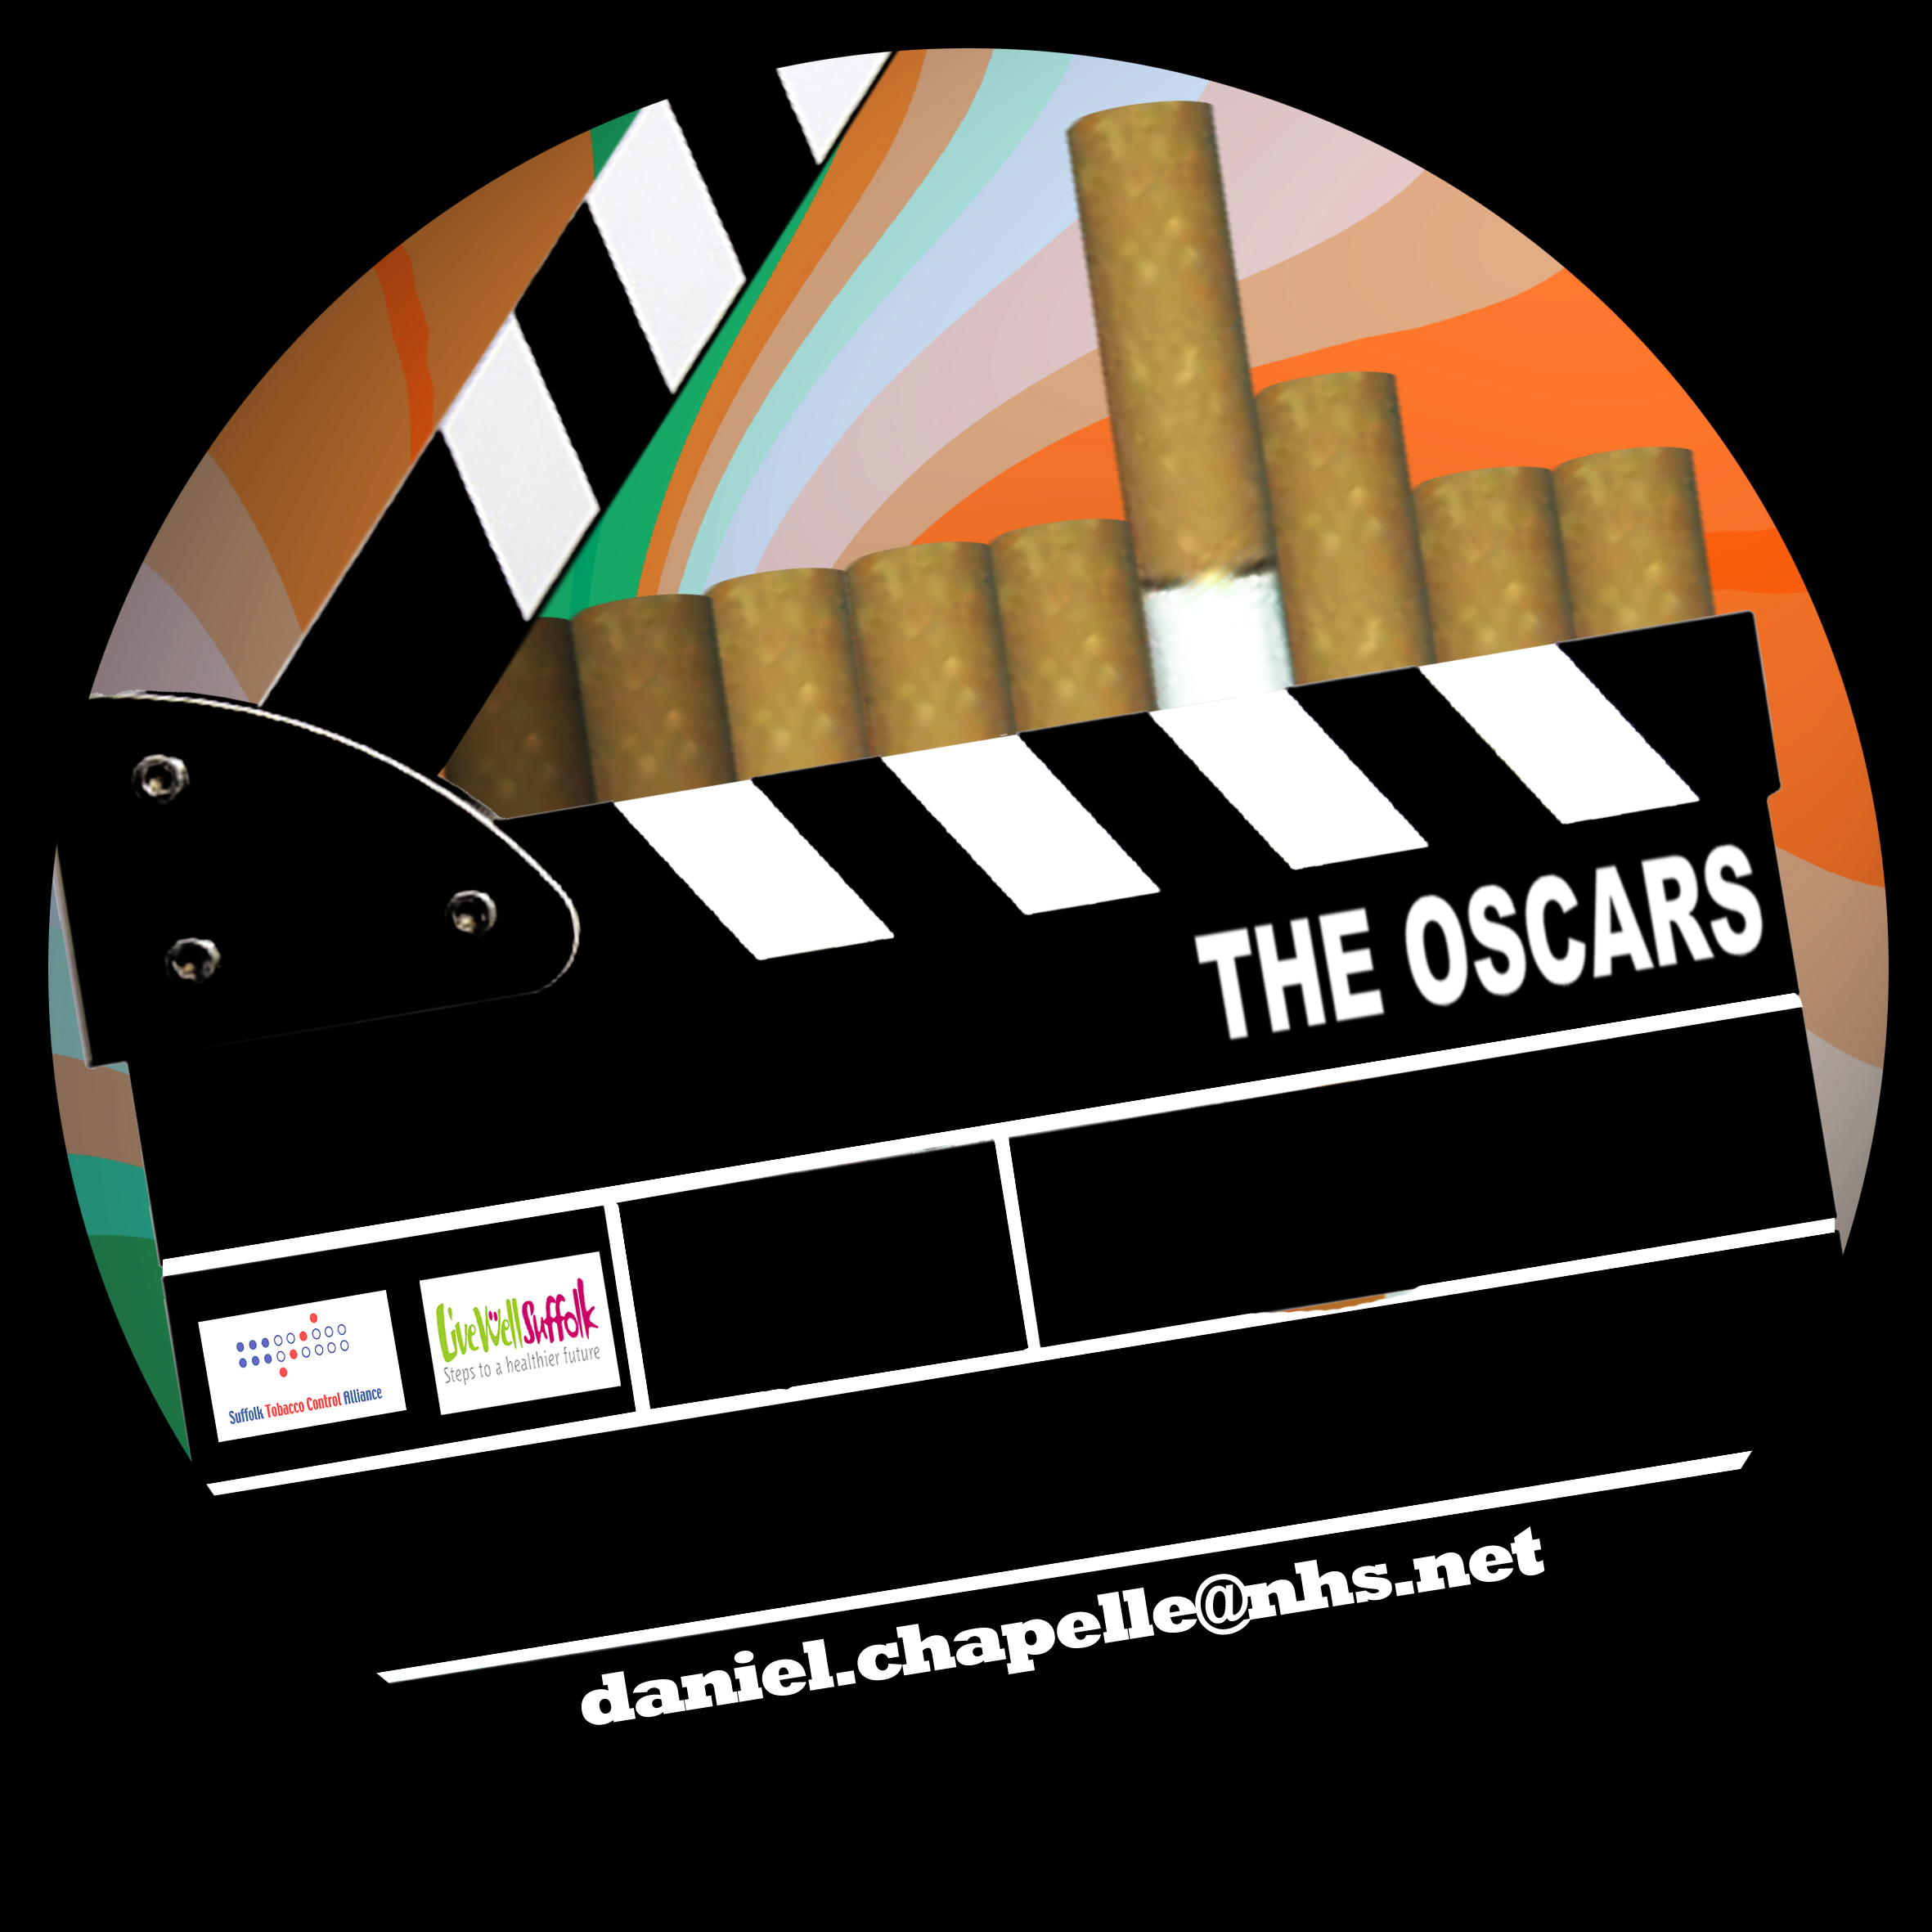 The Oscars 2011 - A film competition for schools